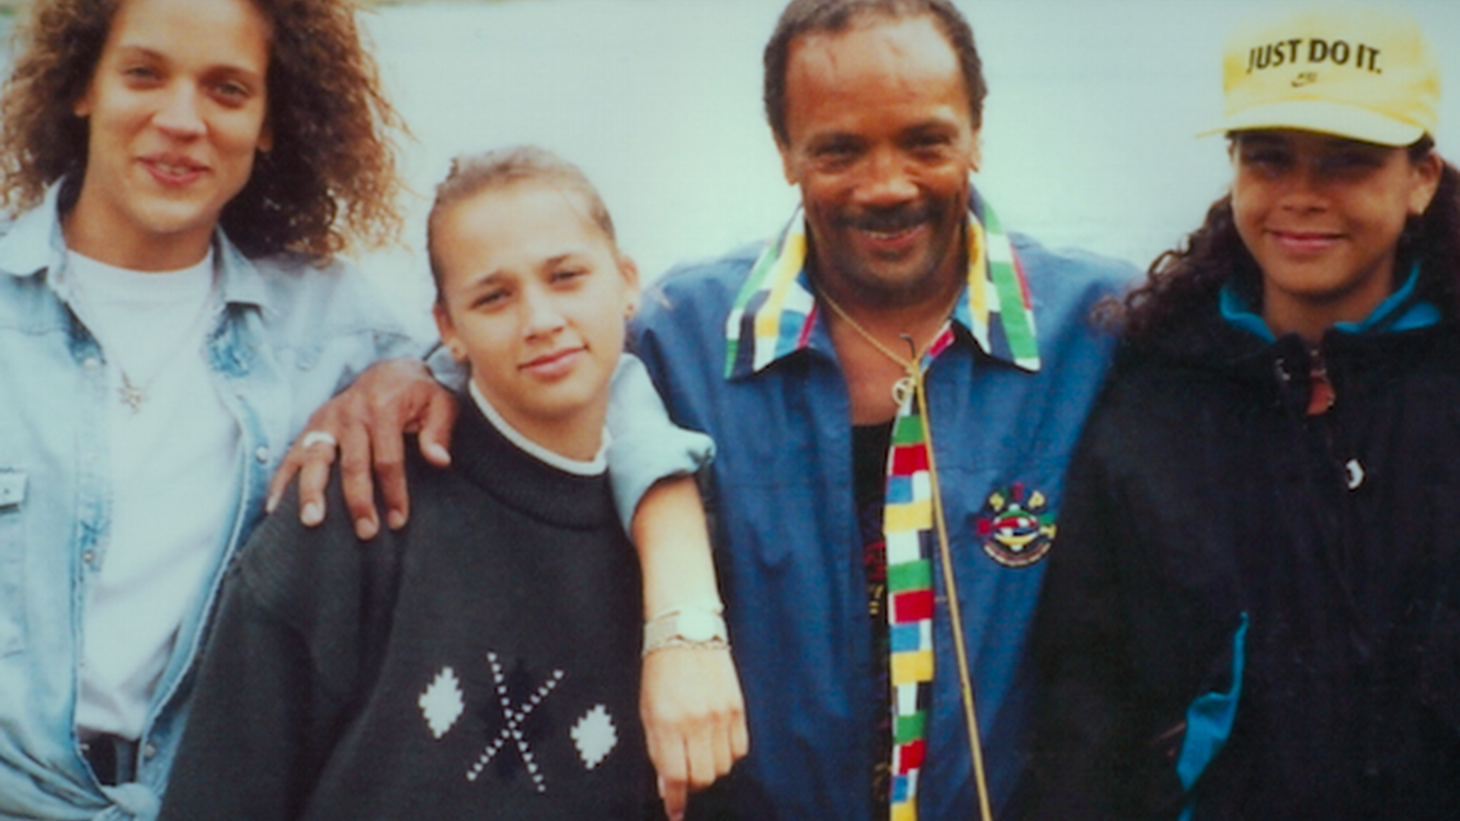 Quincy Jones has lived a long life, and accomplished more than most musicians. He's earned tons of awards. He's dealt with serious health problems. Now his daughter Rashida has made a documentary about him.